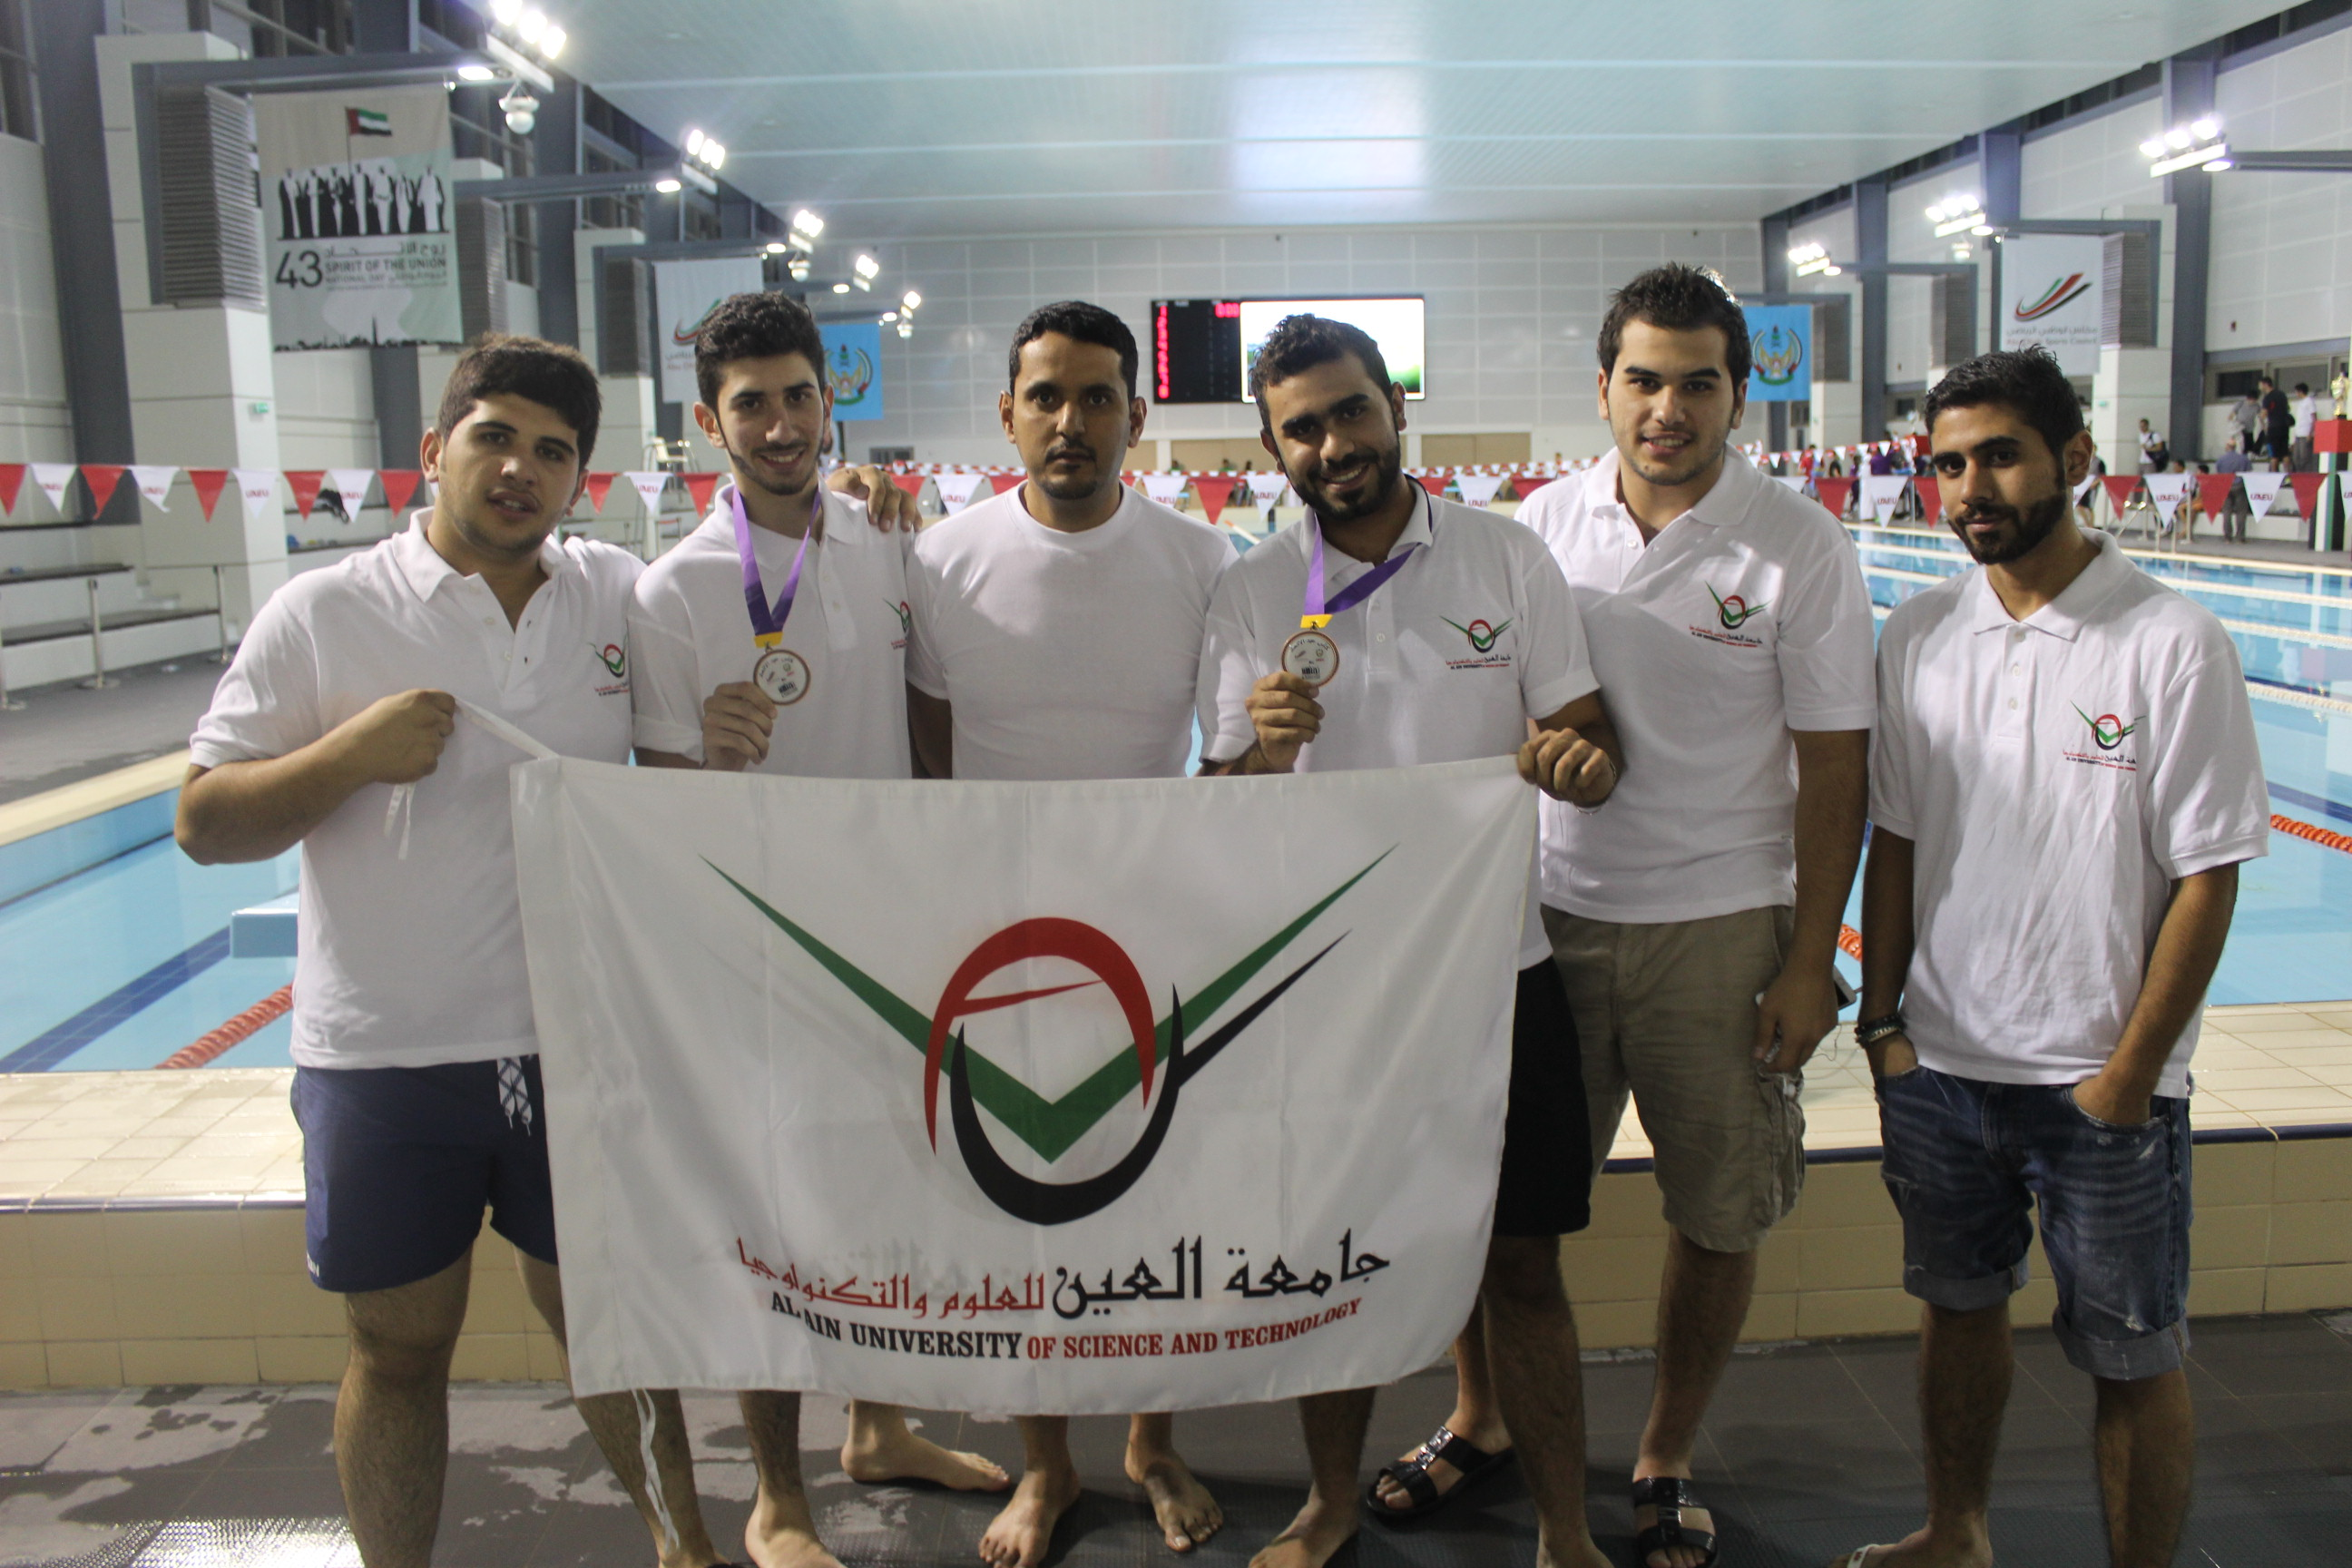 Al Ain University To Claim Third Place in the Open Pool Championship